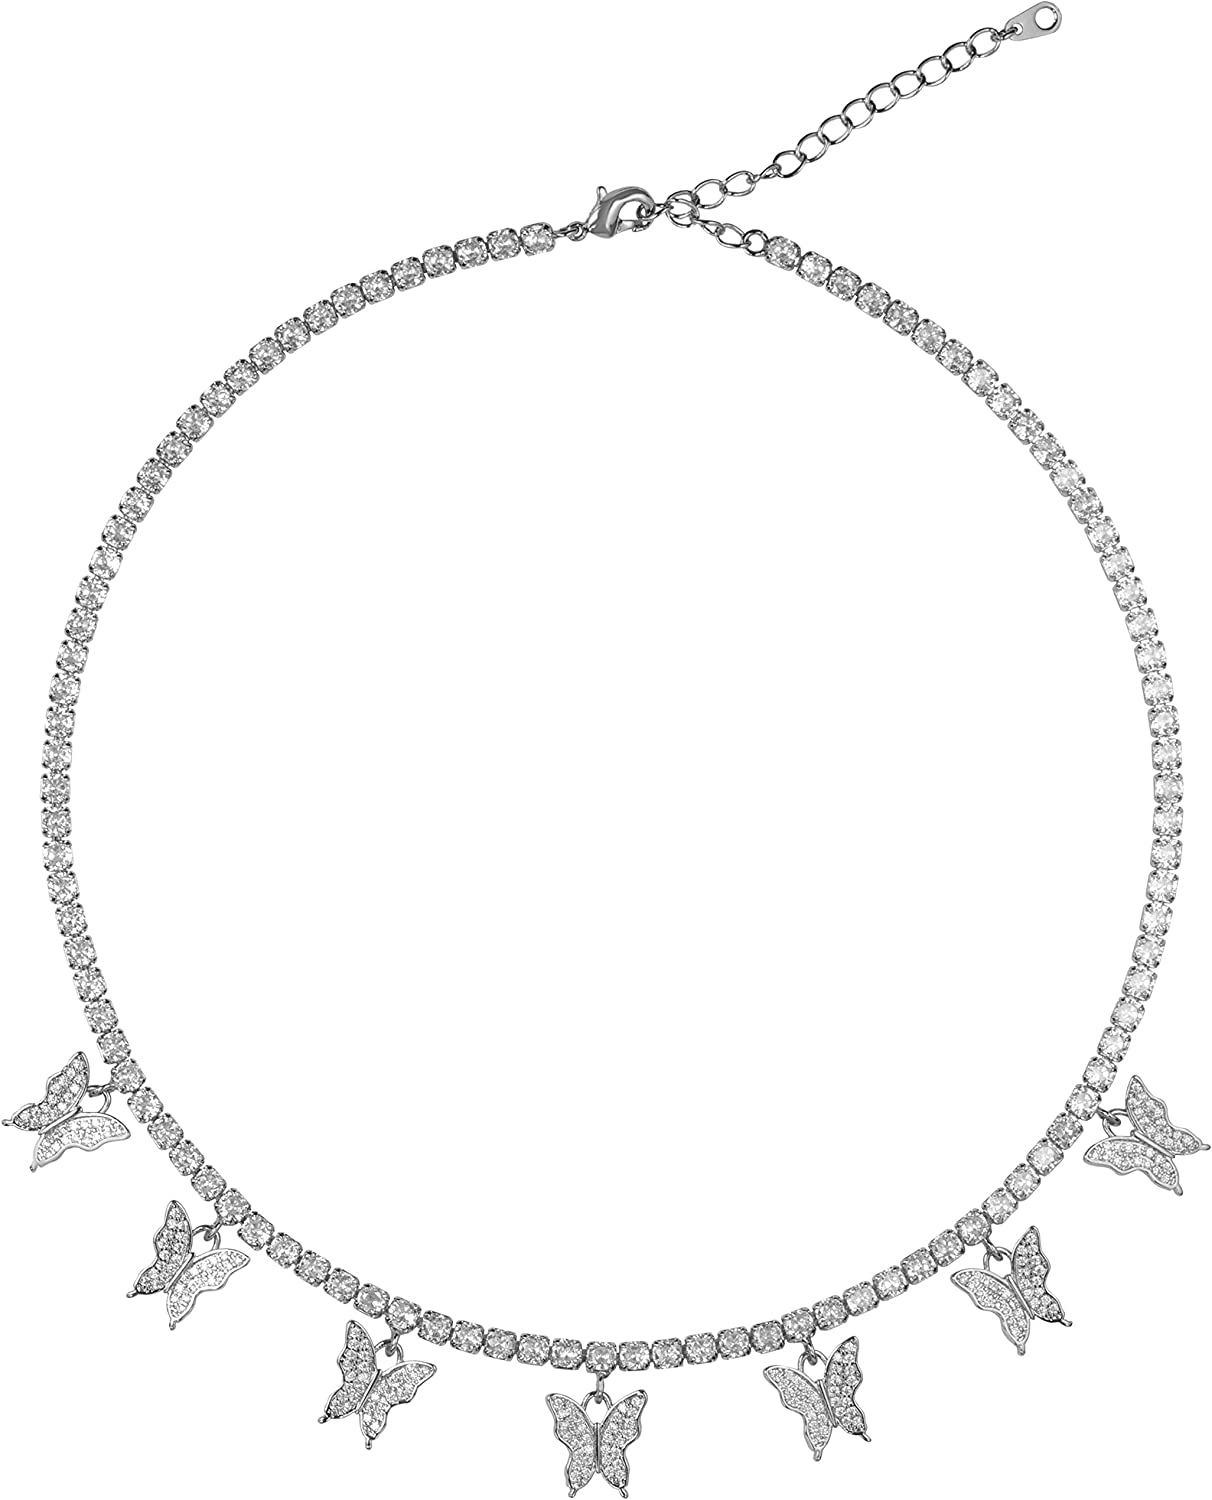 LAVLA Dainty Max 65% OFF Butterfly Choker Necklace Rose Gold Silver Louisville-Jefferson County Mall - P